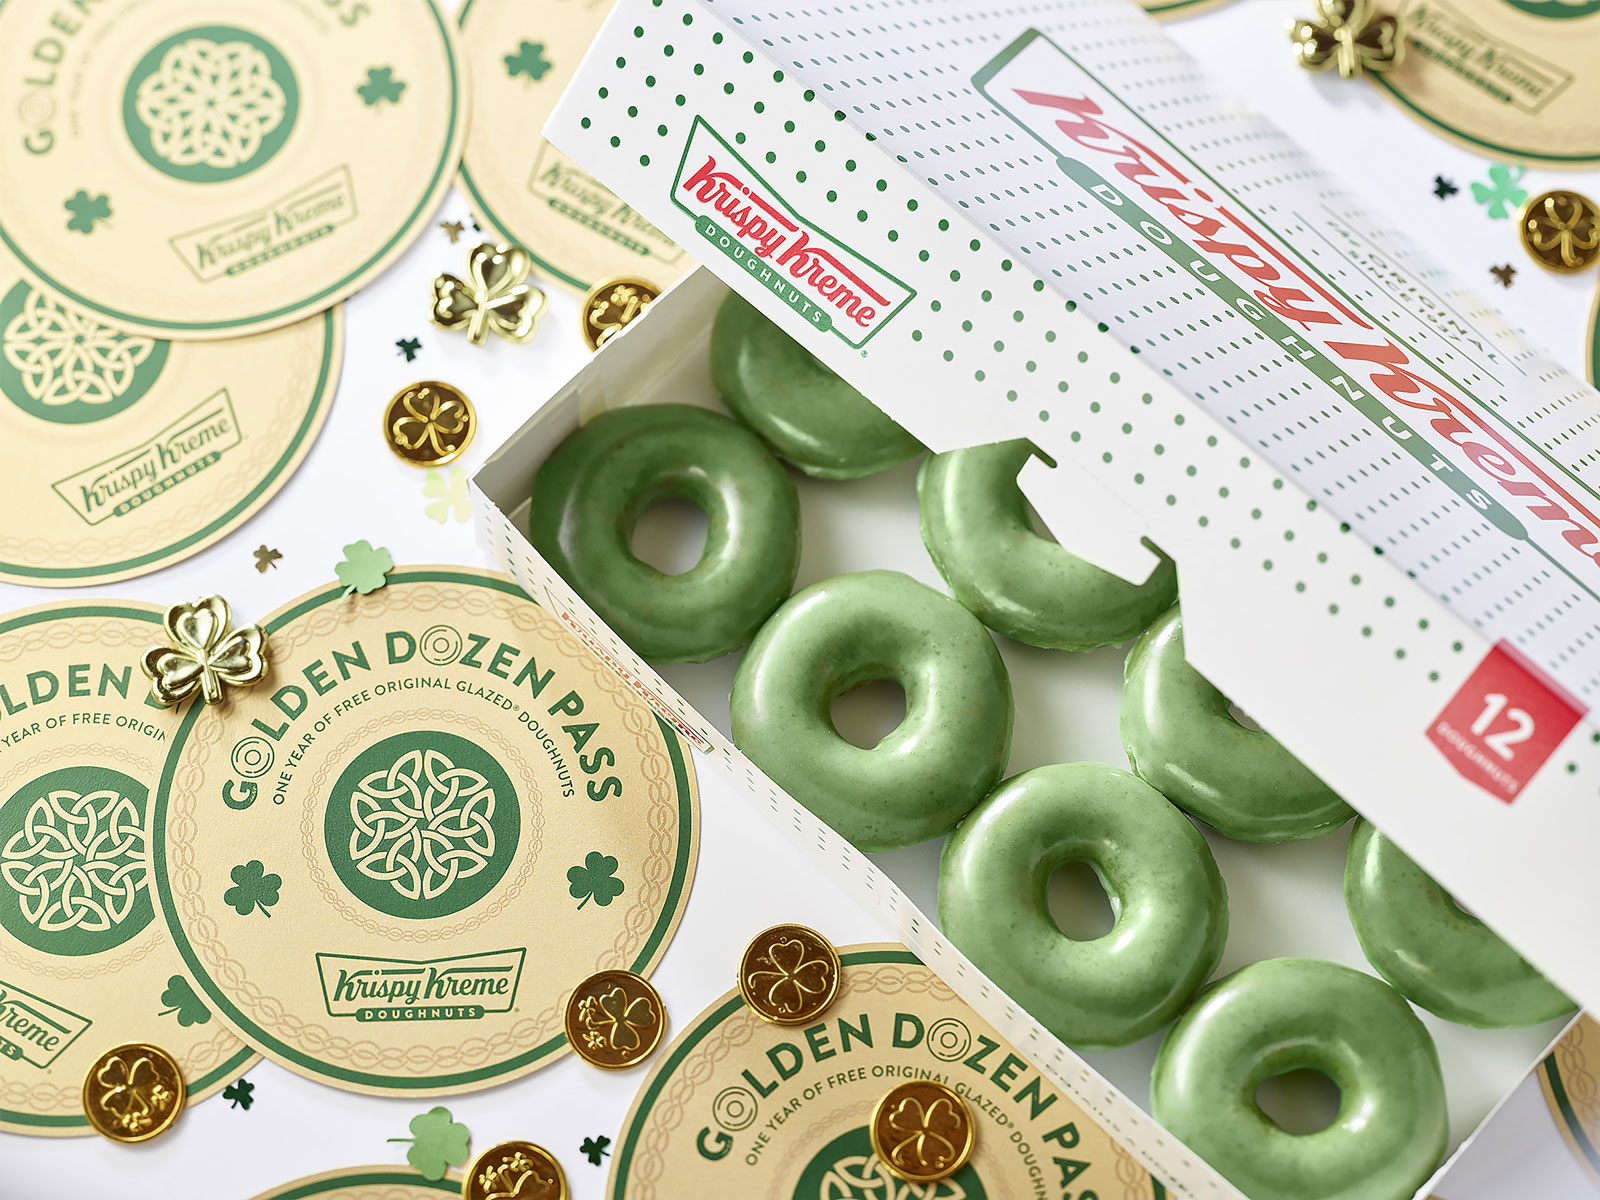 Krispy Kreme Will Give Away Golden Tickets Worth Year of Free Doughnuts on St. Patrick's Day